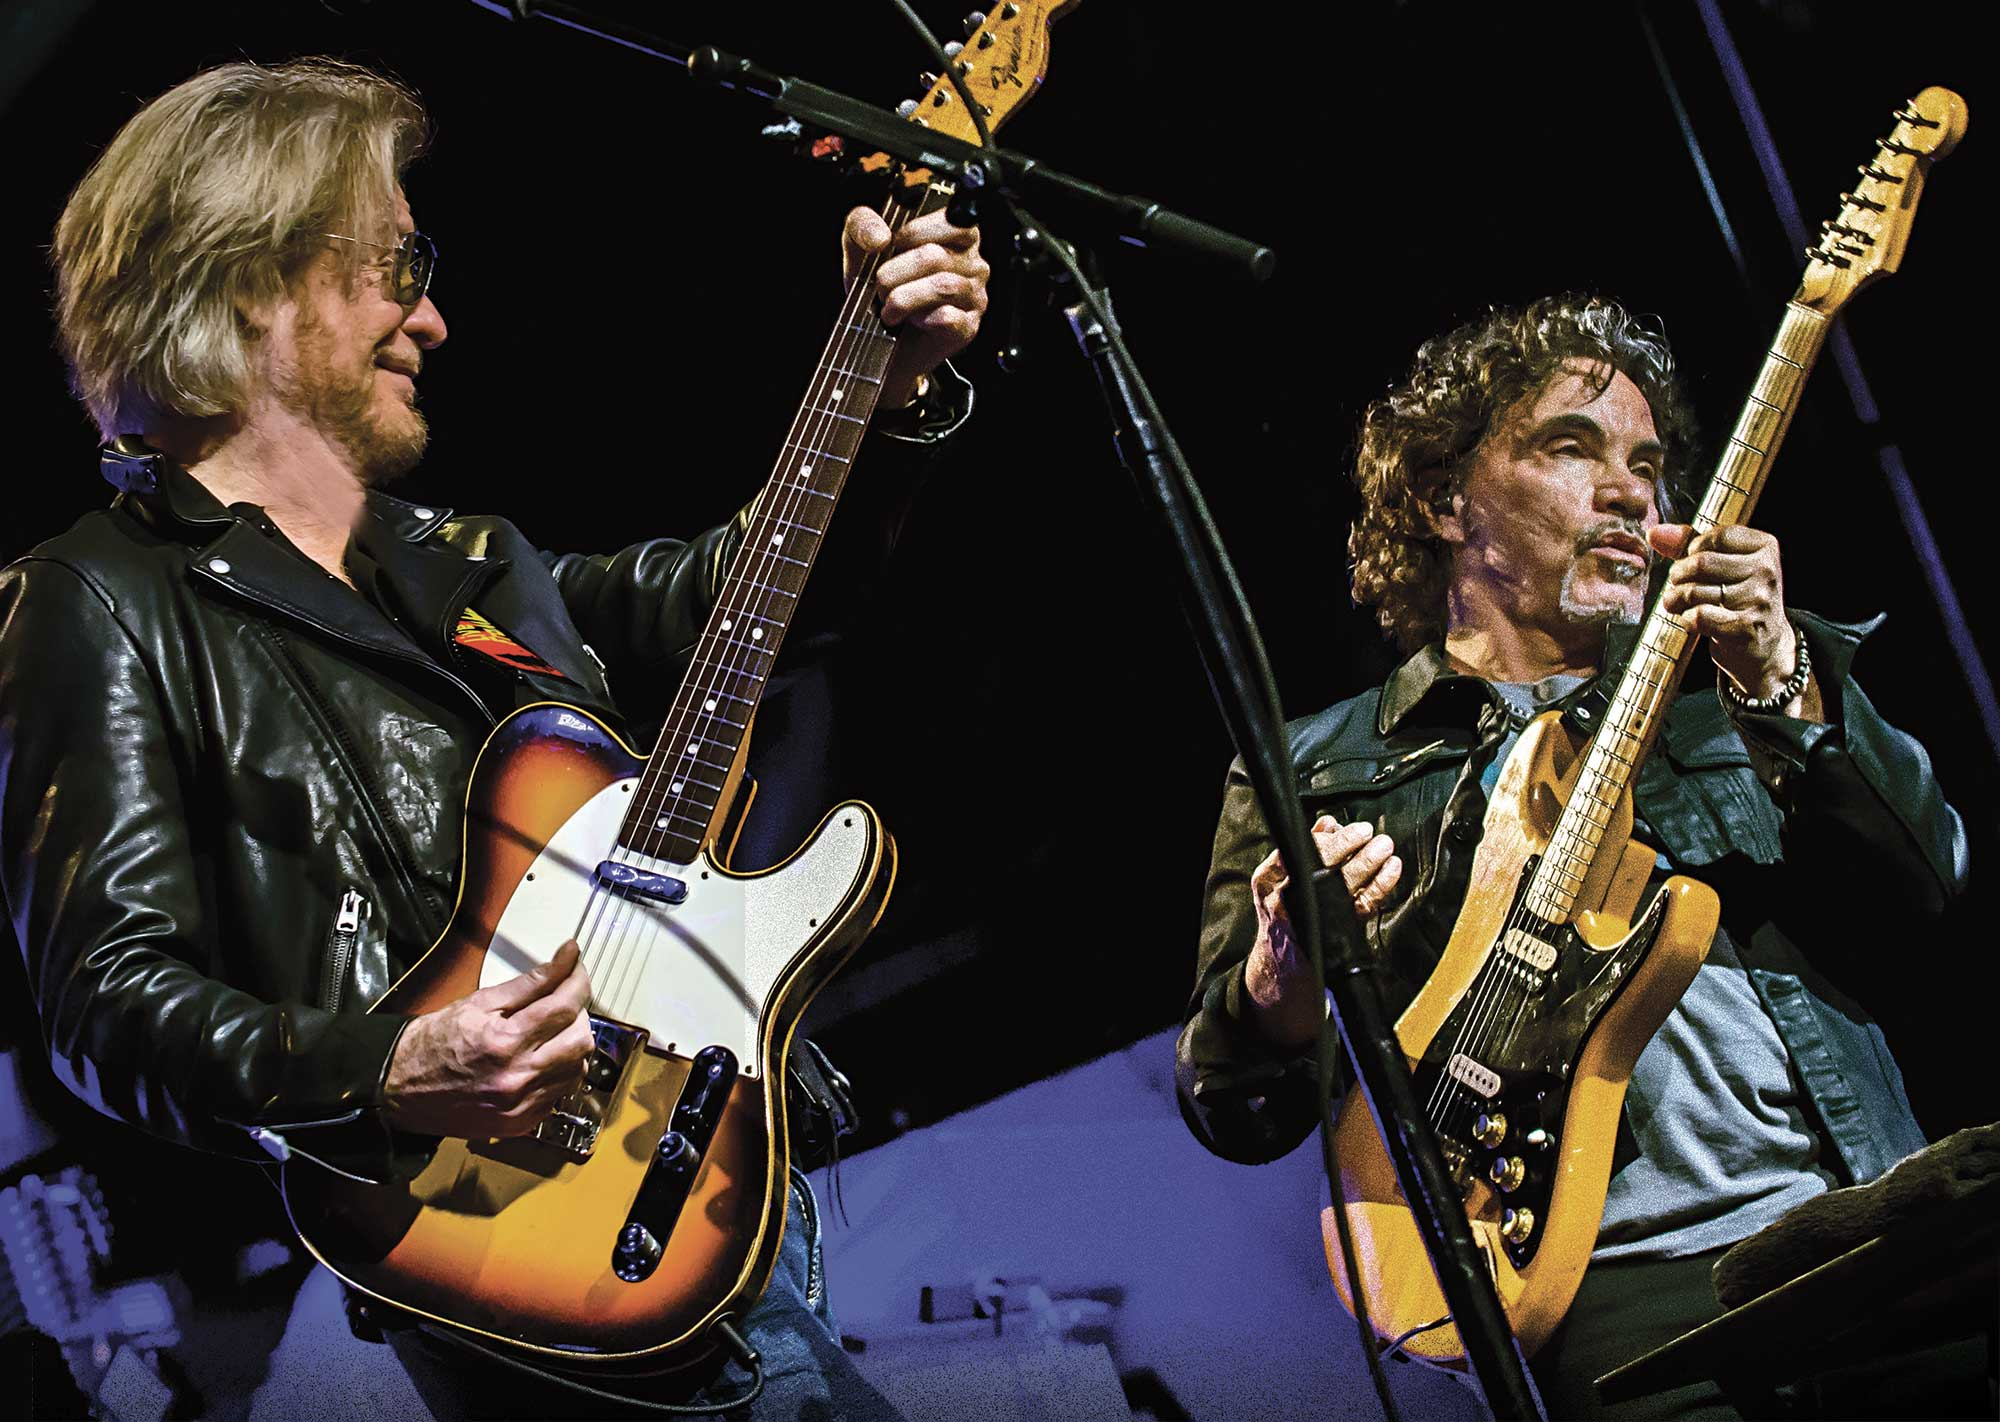 HallAndOates_2000x1422_web.jpg